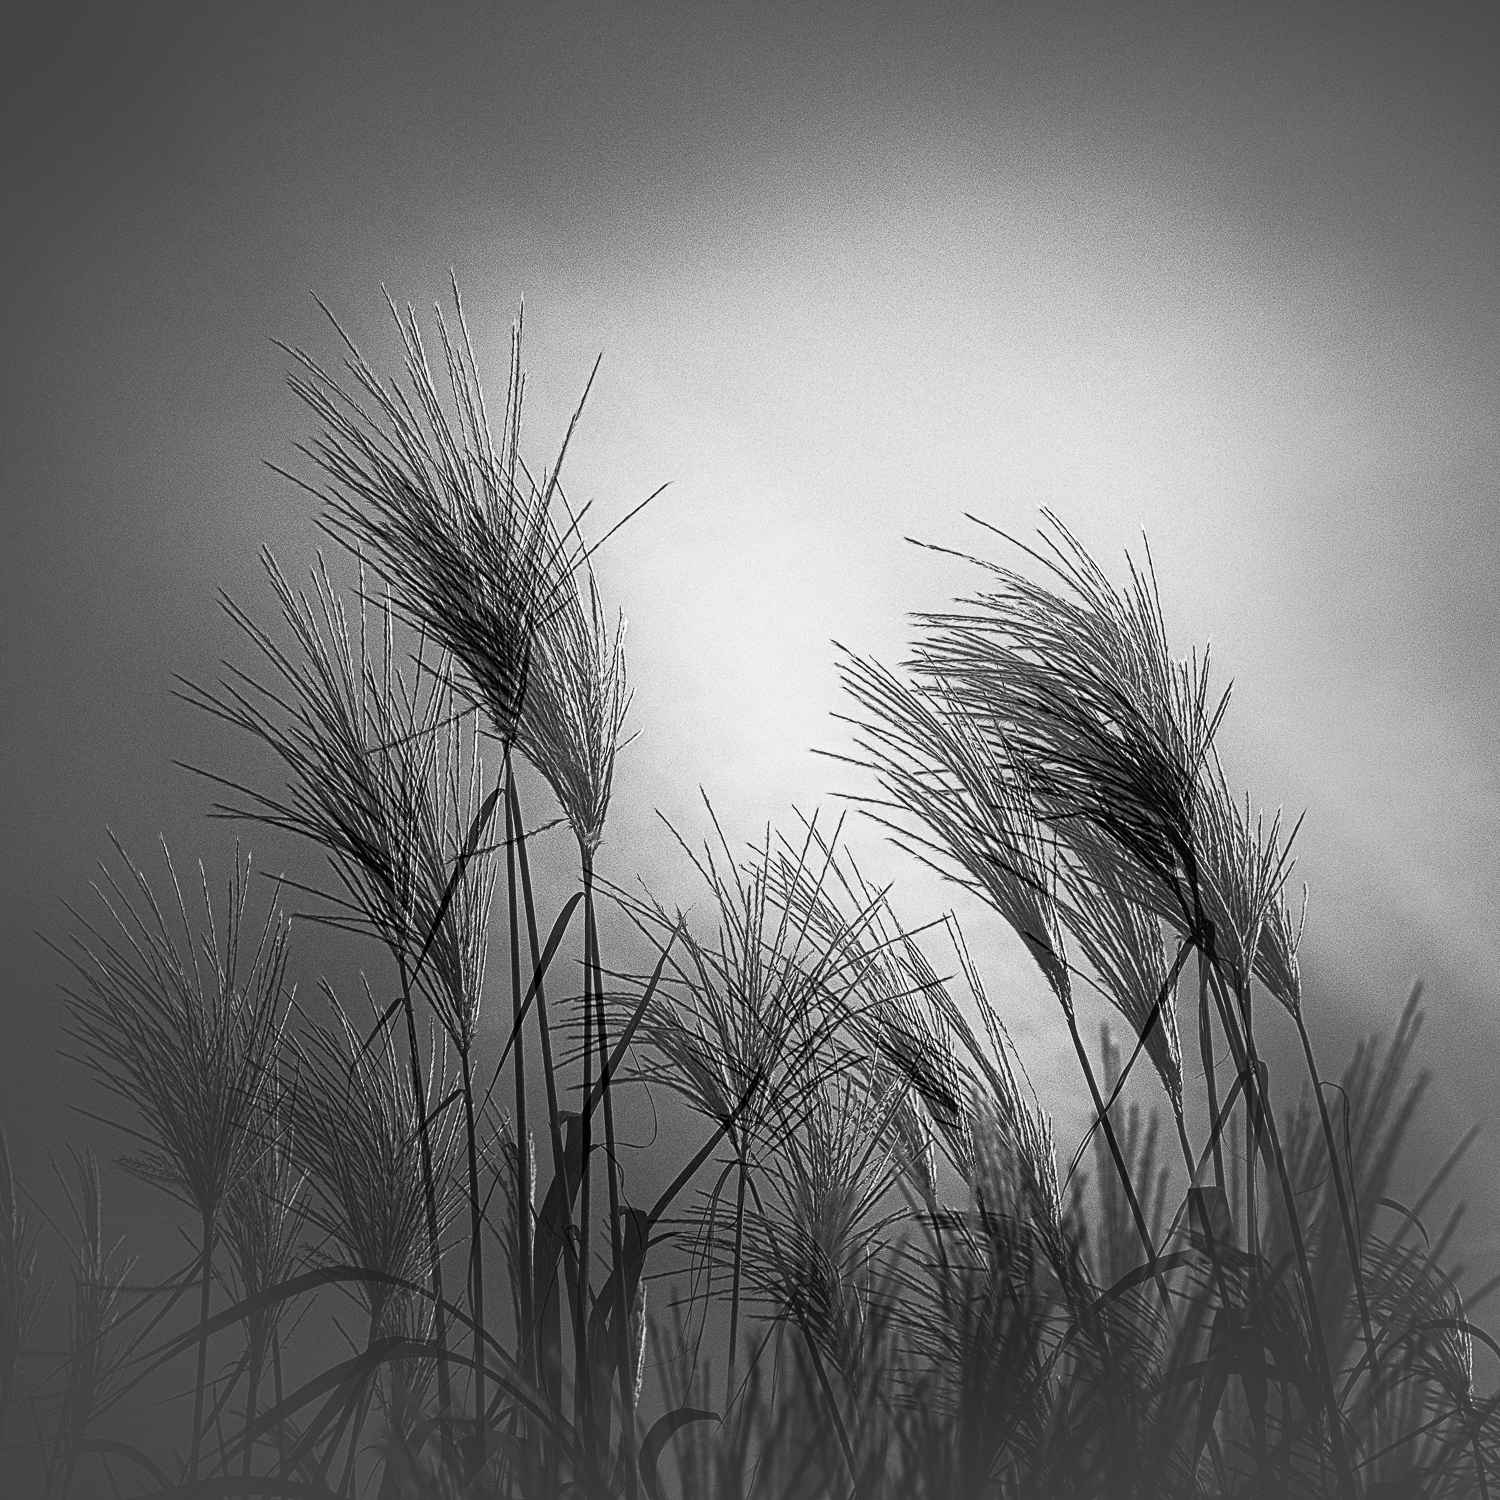 Graceful Grasses